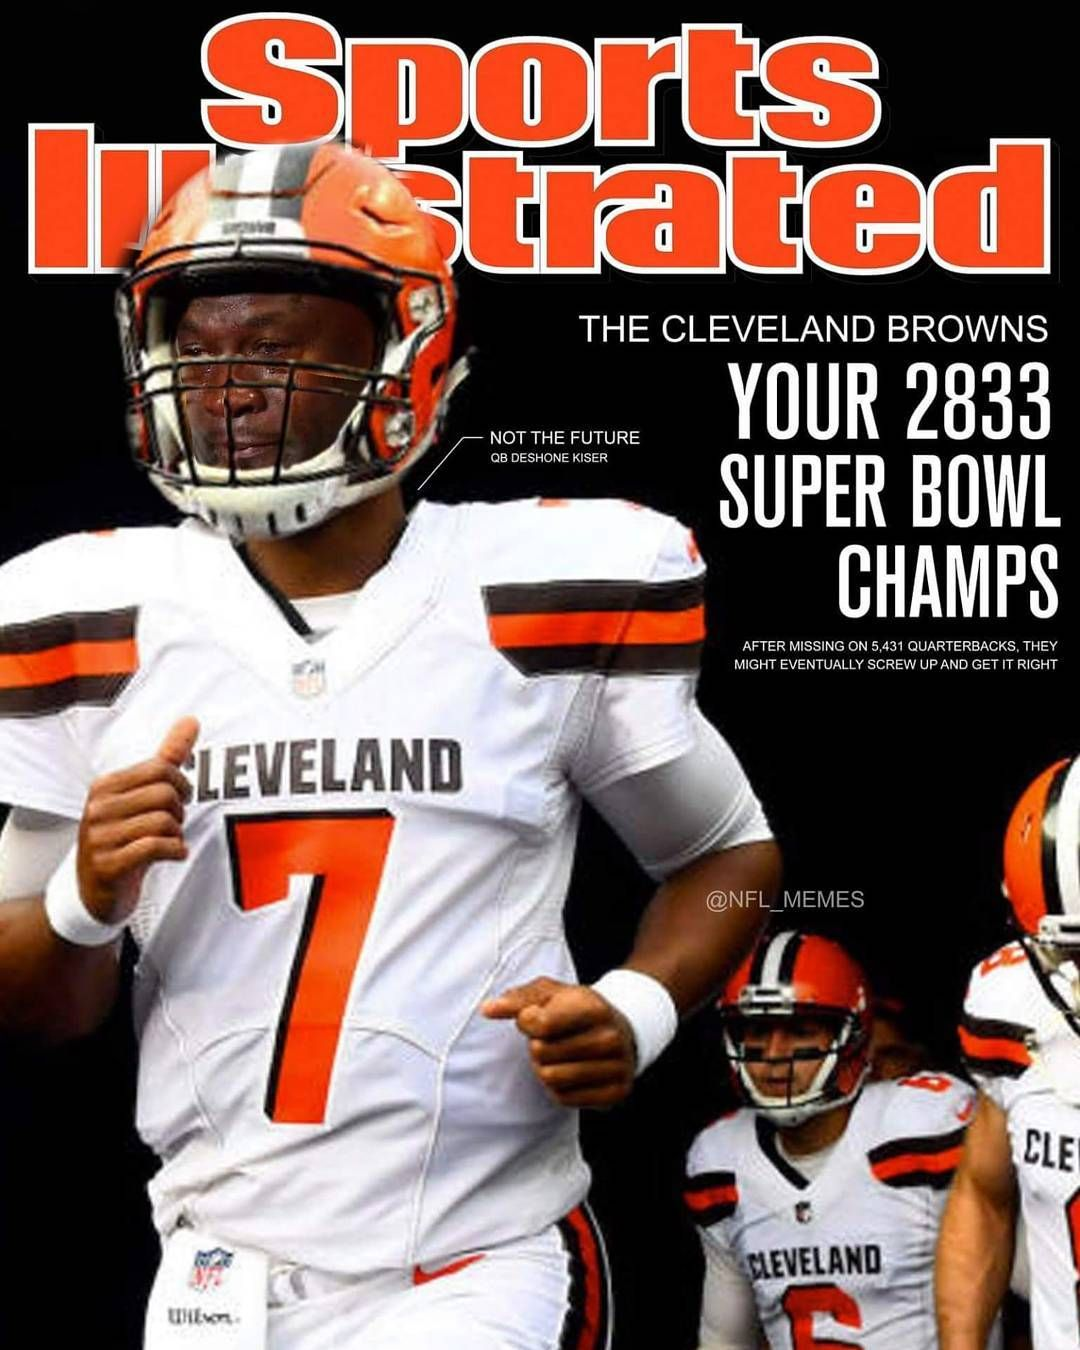 It S Too Easy To Pick On The Browns Cryingjordanface Cryingjordan Dawgpound Browns Cleveland Jordan Meme Nfl Memes Memes